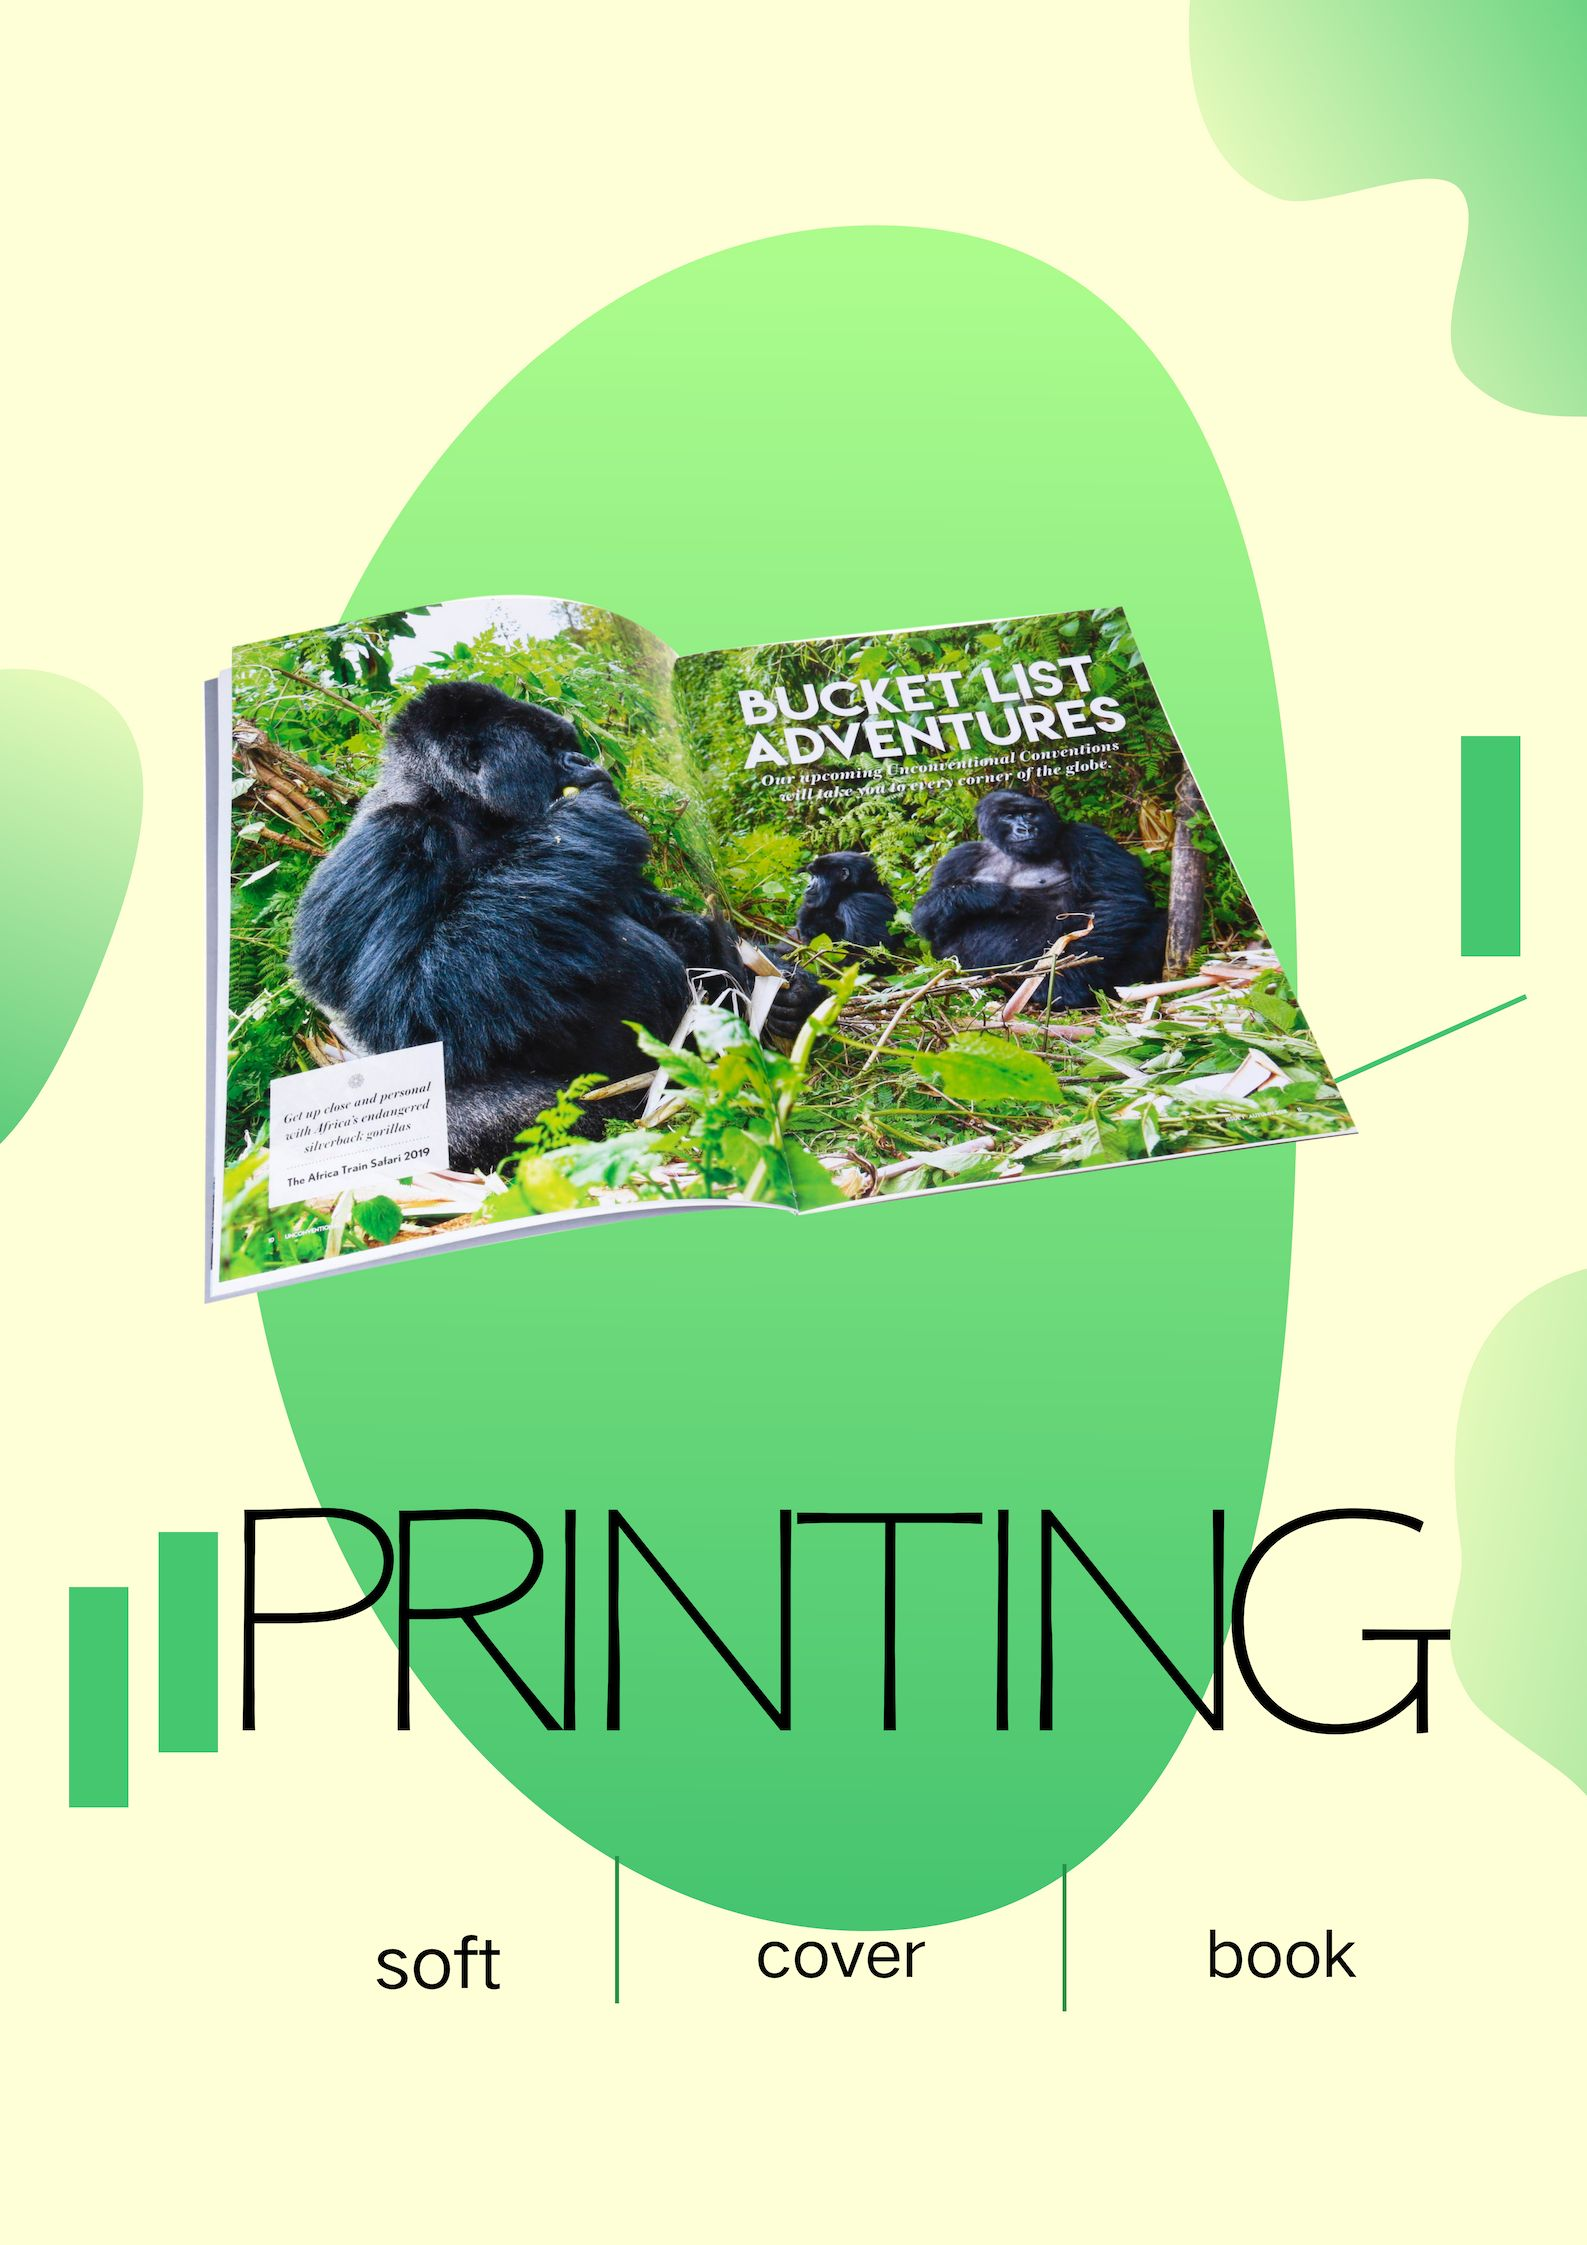 Softcover Book Book Printing Services Book Print Paperback Books